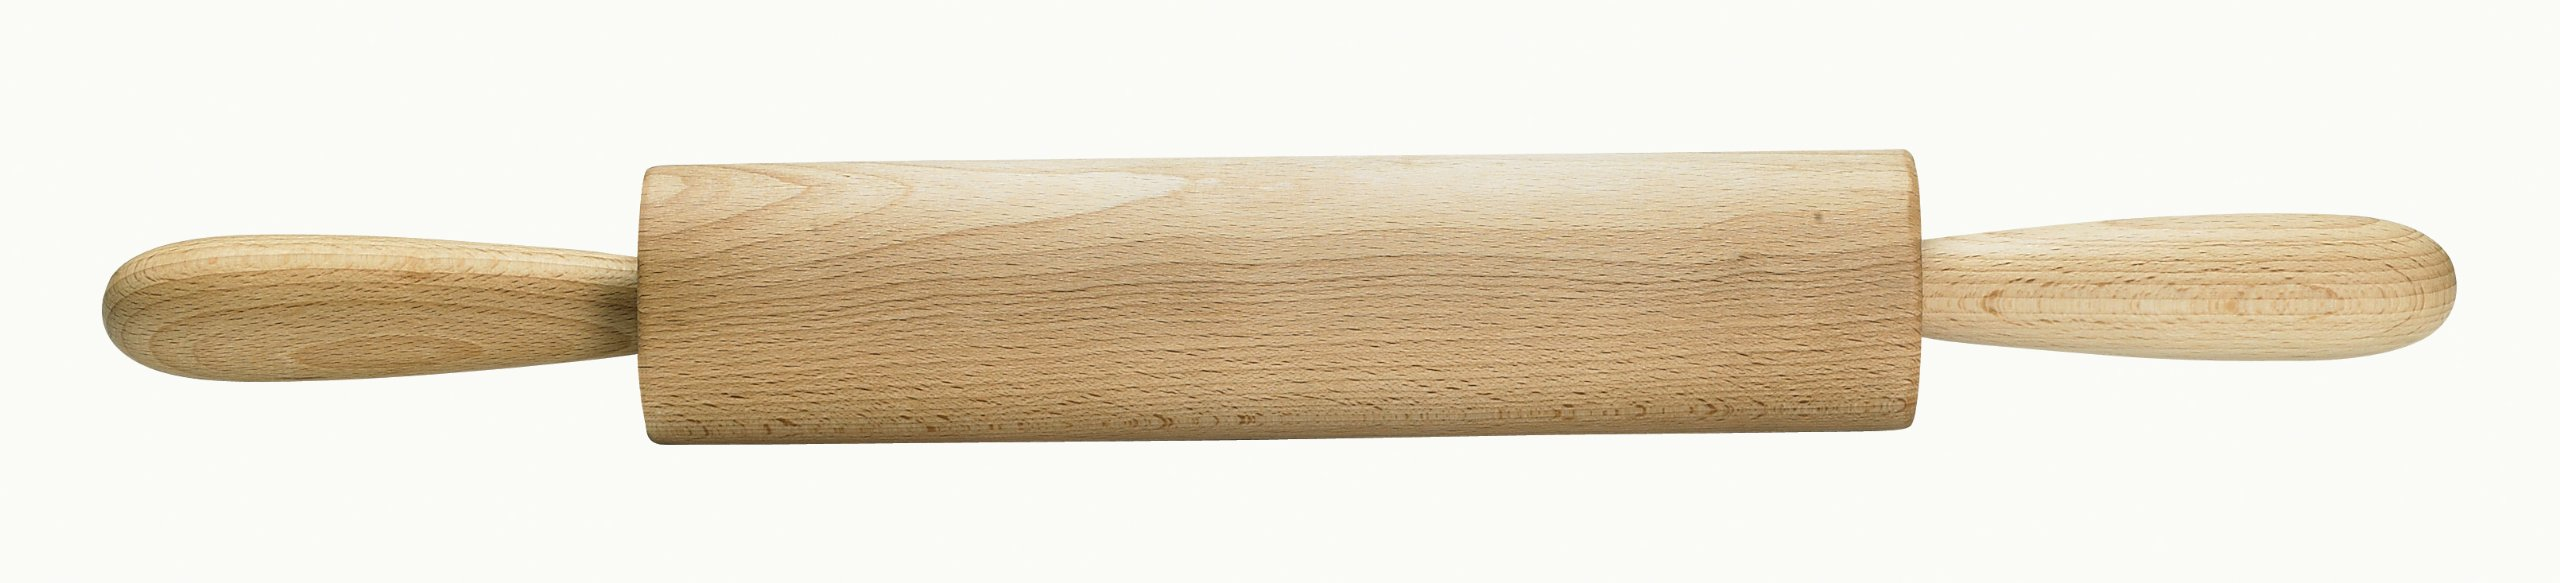 Mrs. Anderson's Baking Wooden Rolling Pin, German Beechwood with Steel Ball Bearings, 10-Inch by 2-Inch